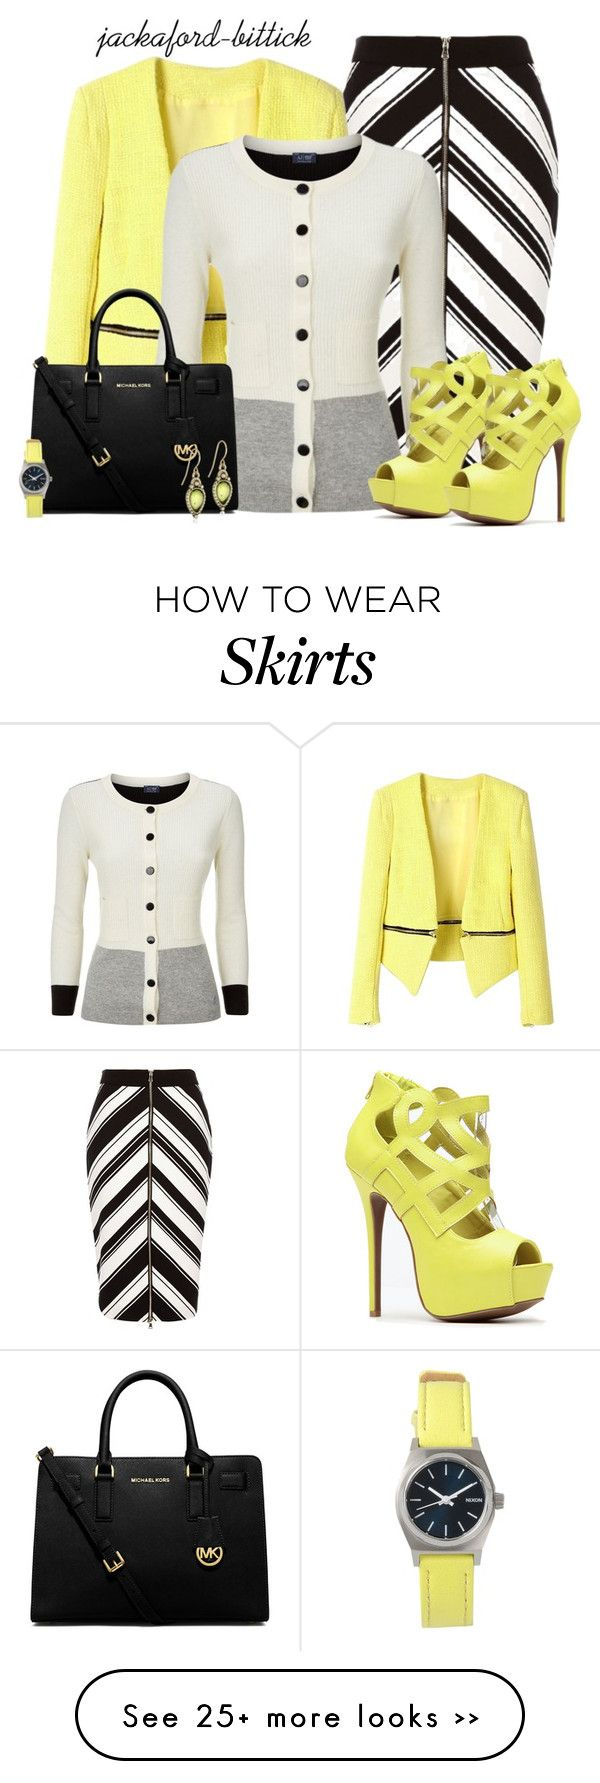 """""""Skirt and Blazer Contest3"""" by jackaford-bittick on Polyvore featuring River Island, Armani Jeans, MICHAEL Michael Kors, Nixon and The Sak"""